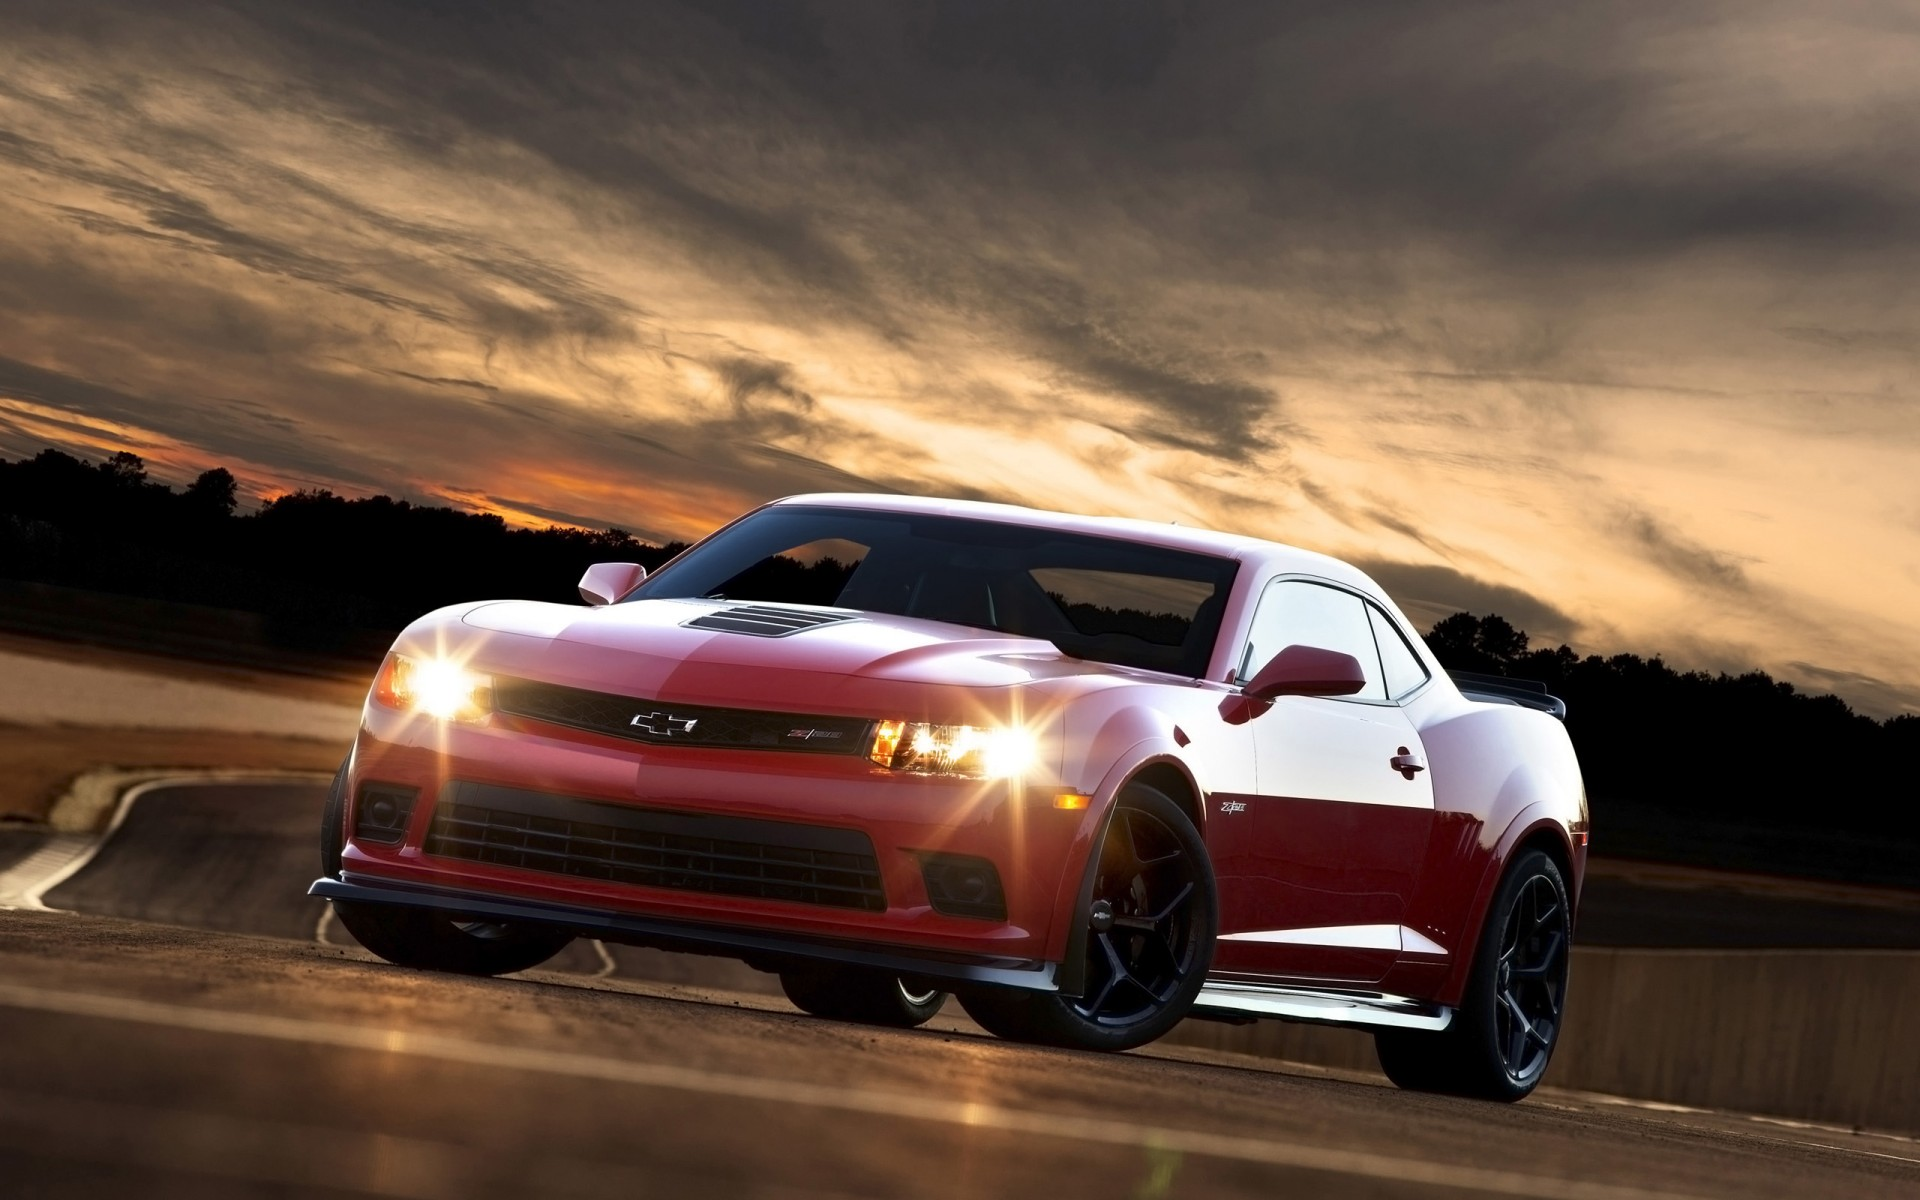 2015 Chevrolet Camaro Z28 Wallpaper  HD Car Wallpapers